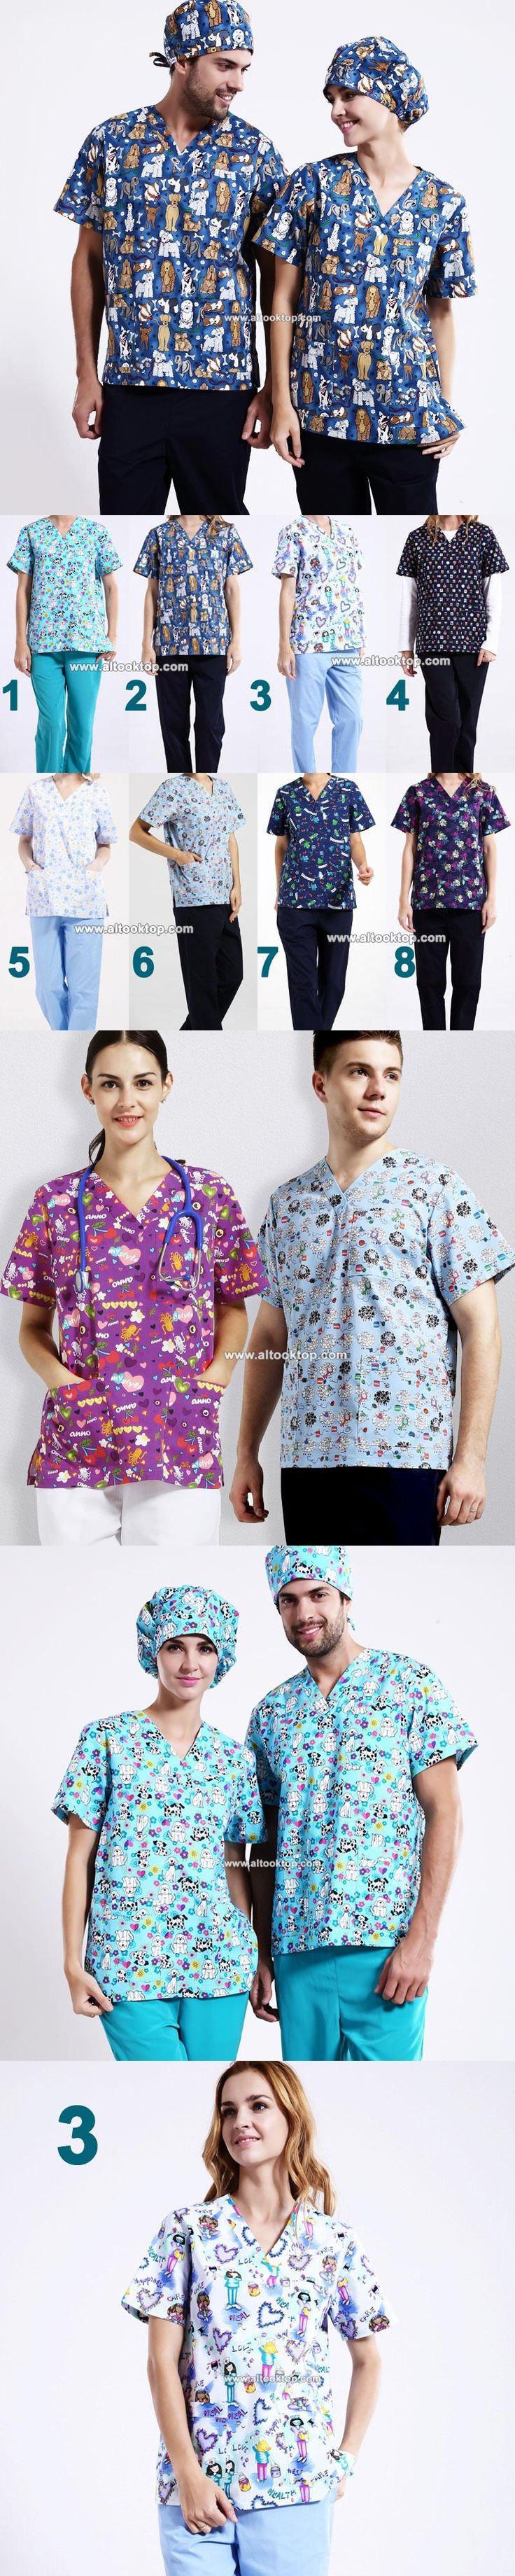 Purple animal hospital clinic doctor workwear scrub set pet print medical robe clothes medical clothing nurse uniform top +pants